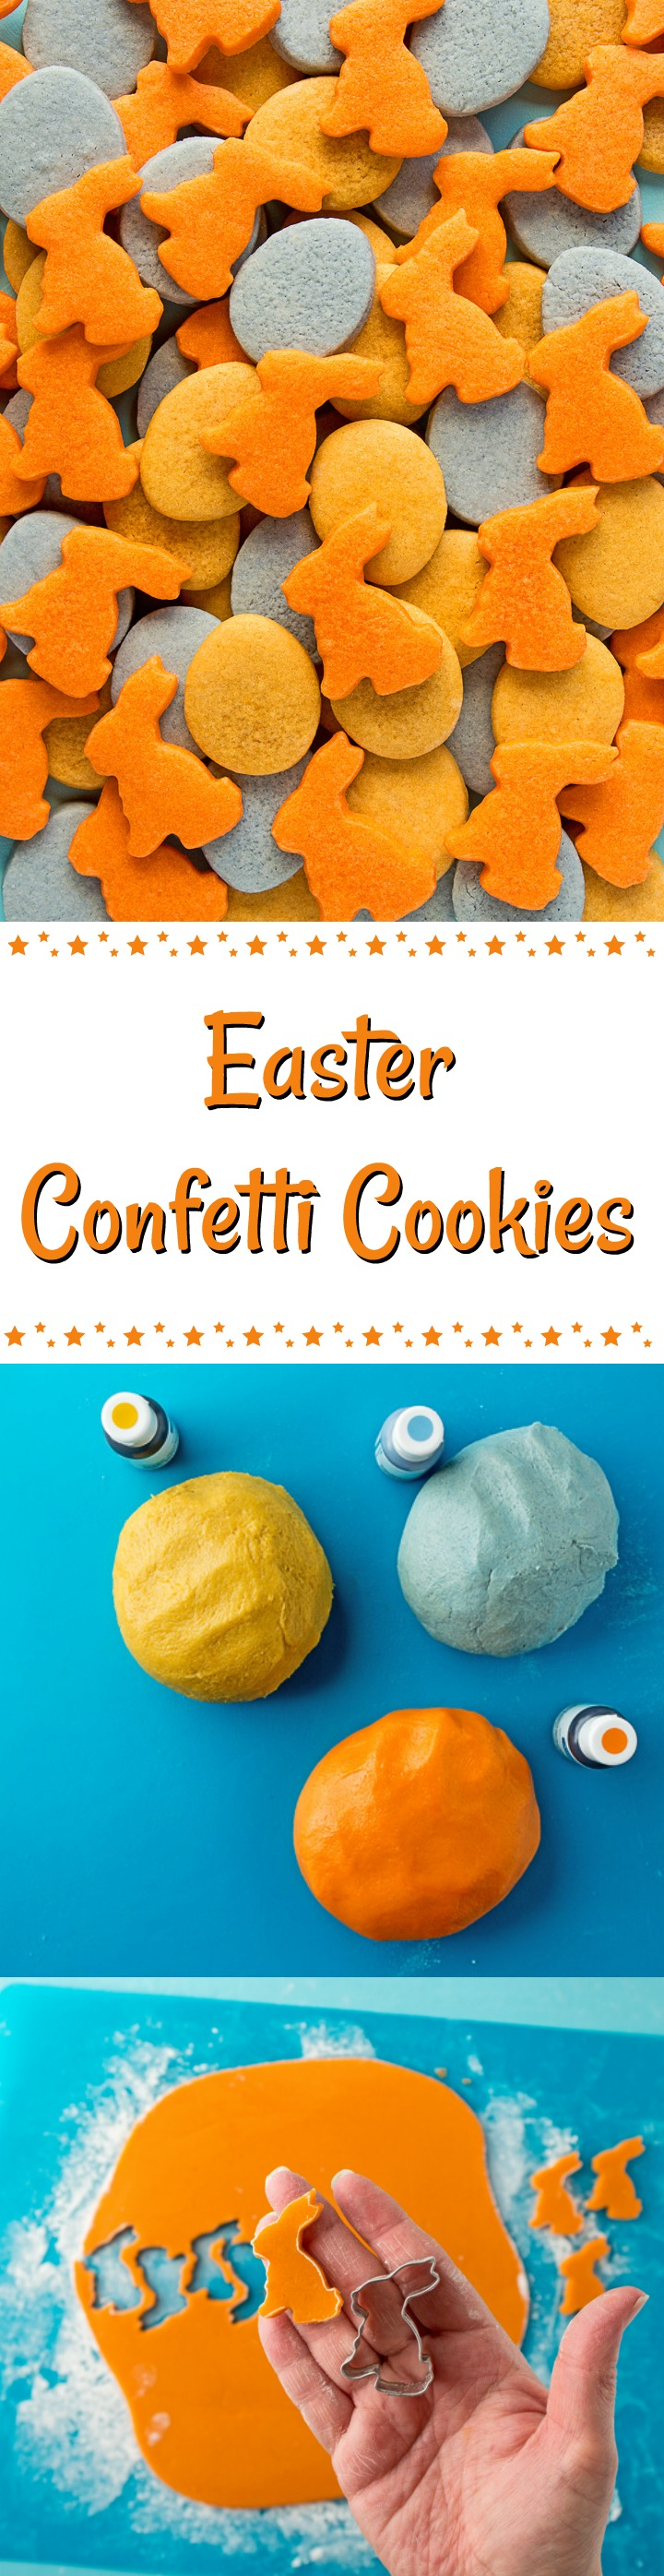 How to Make Fun Awesome Little Easter Confetti Cookies | The Bearfoot Baker